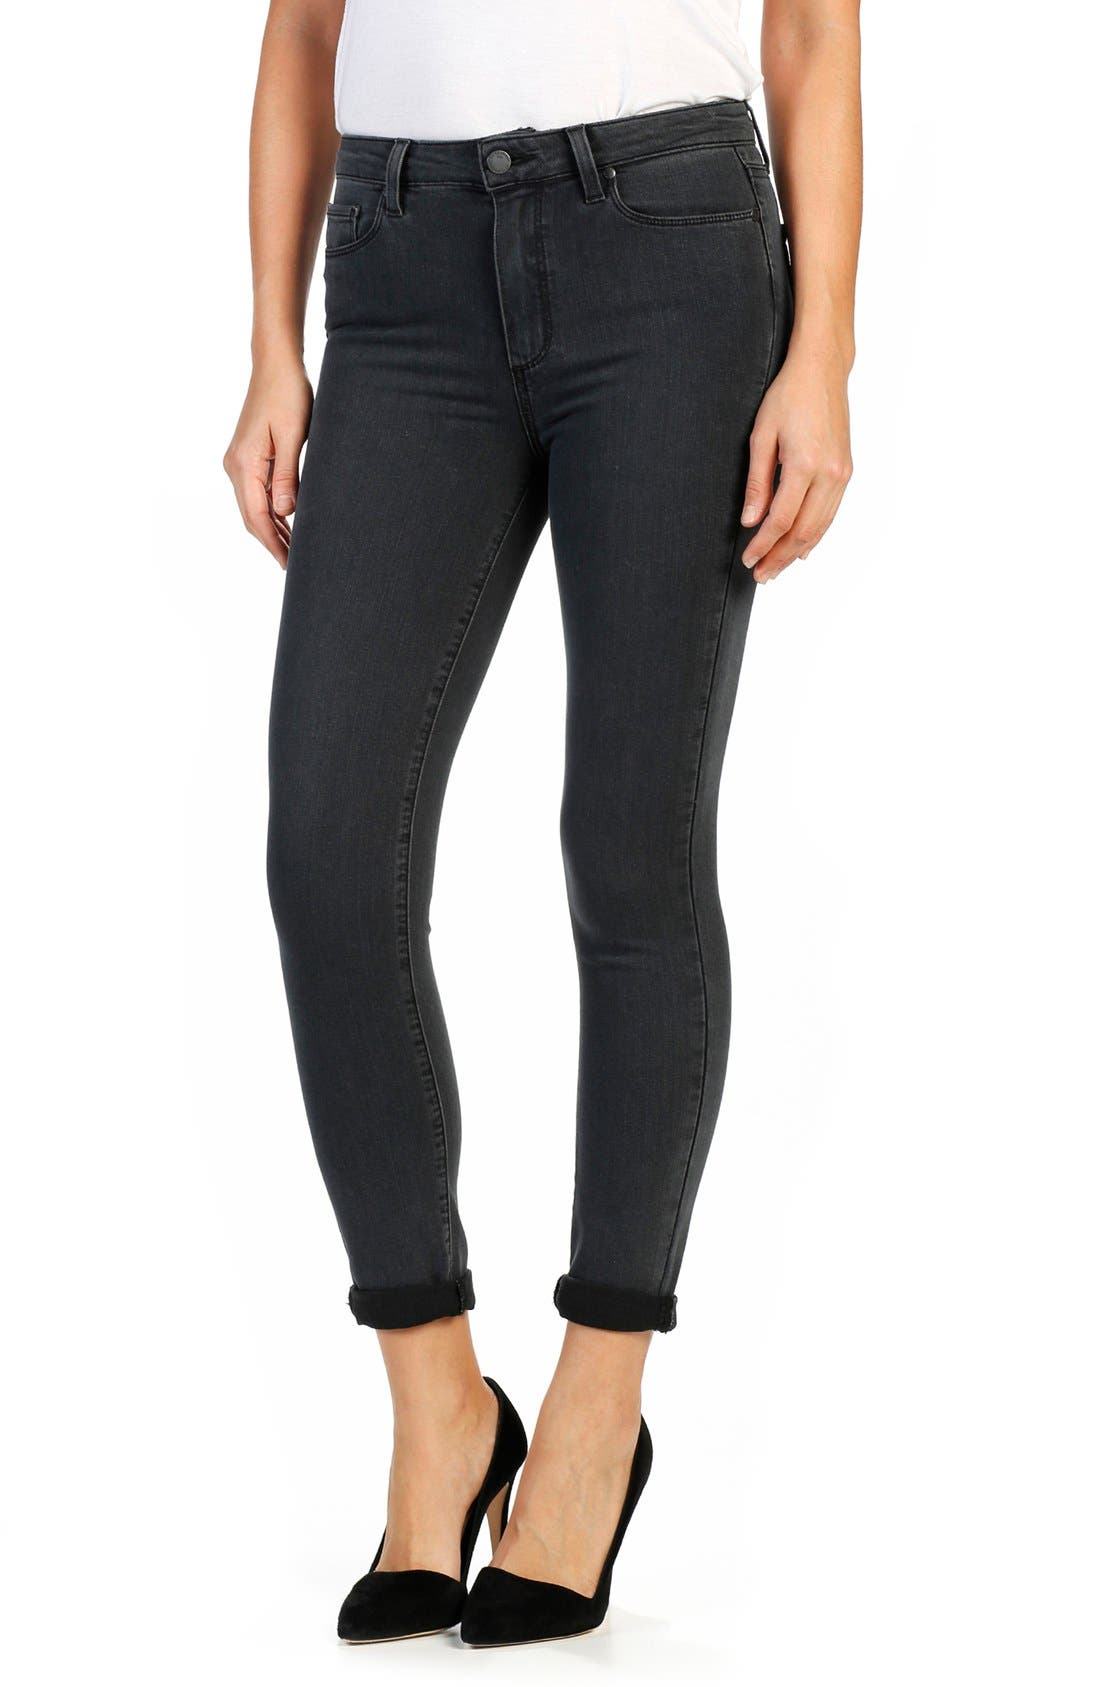 PAIGE Transcend Hoxton Crop Roll-Up High Waist Ultra Skinny Jeans (Smoke Grey)